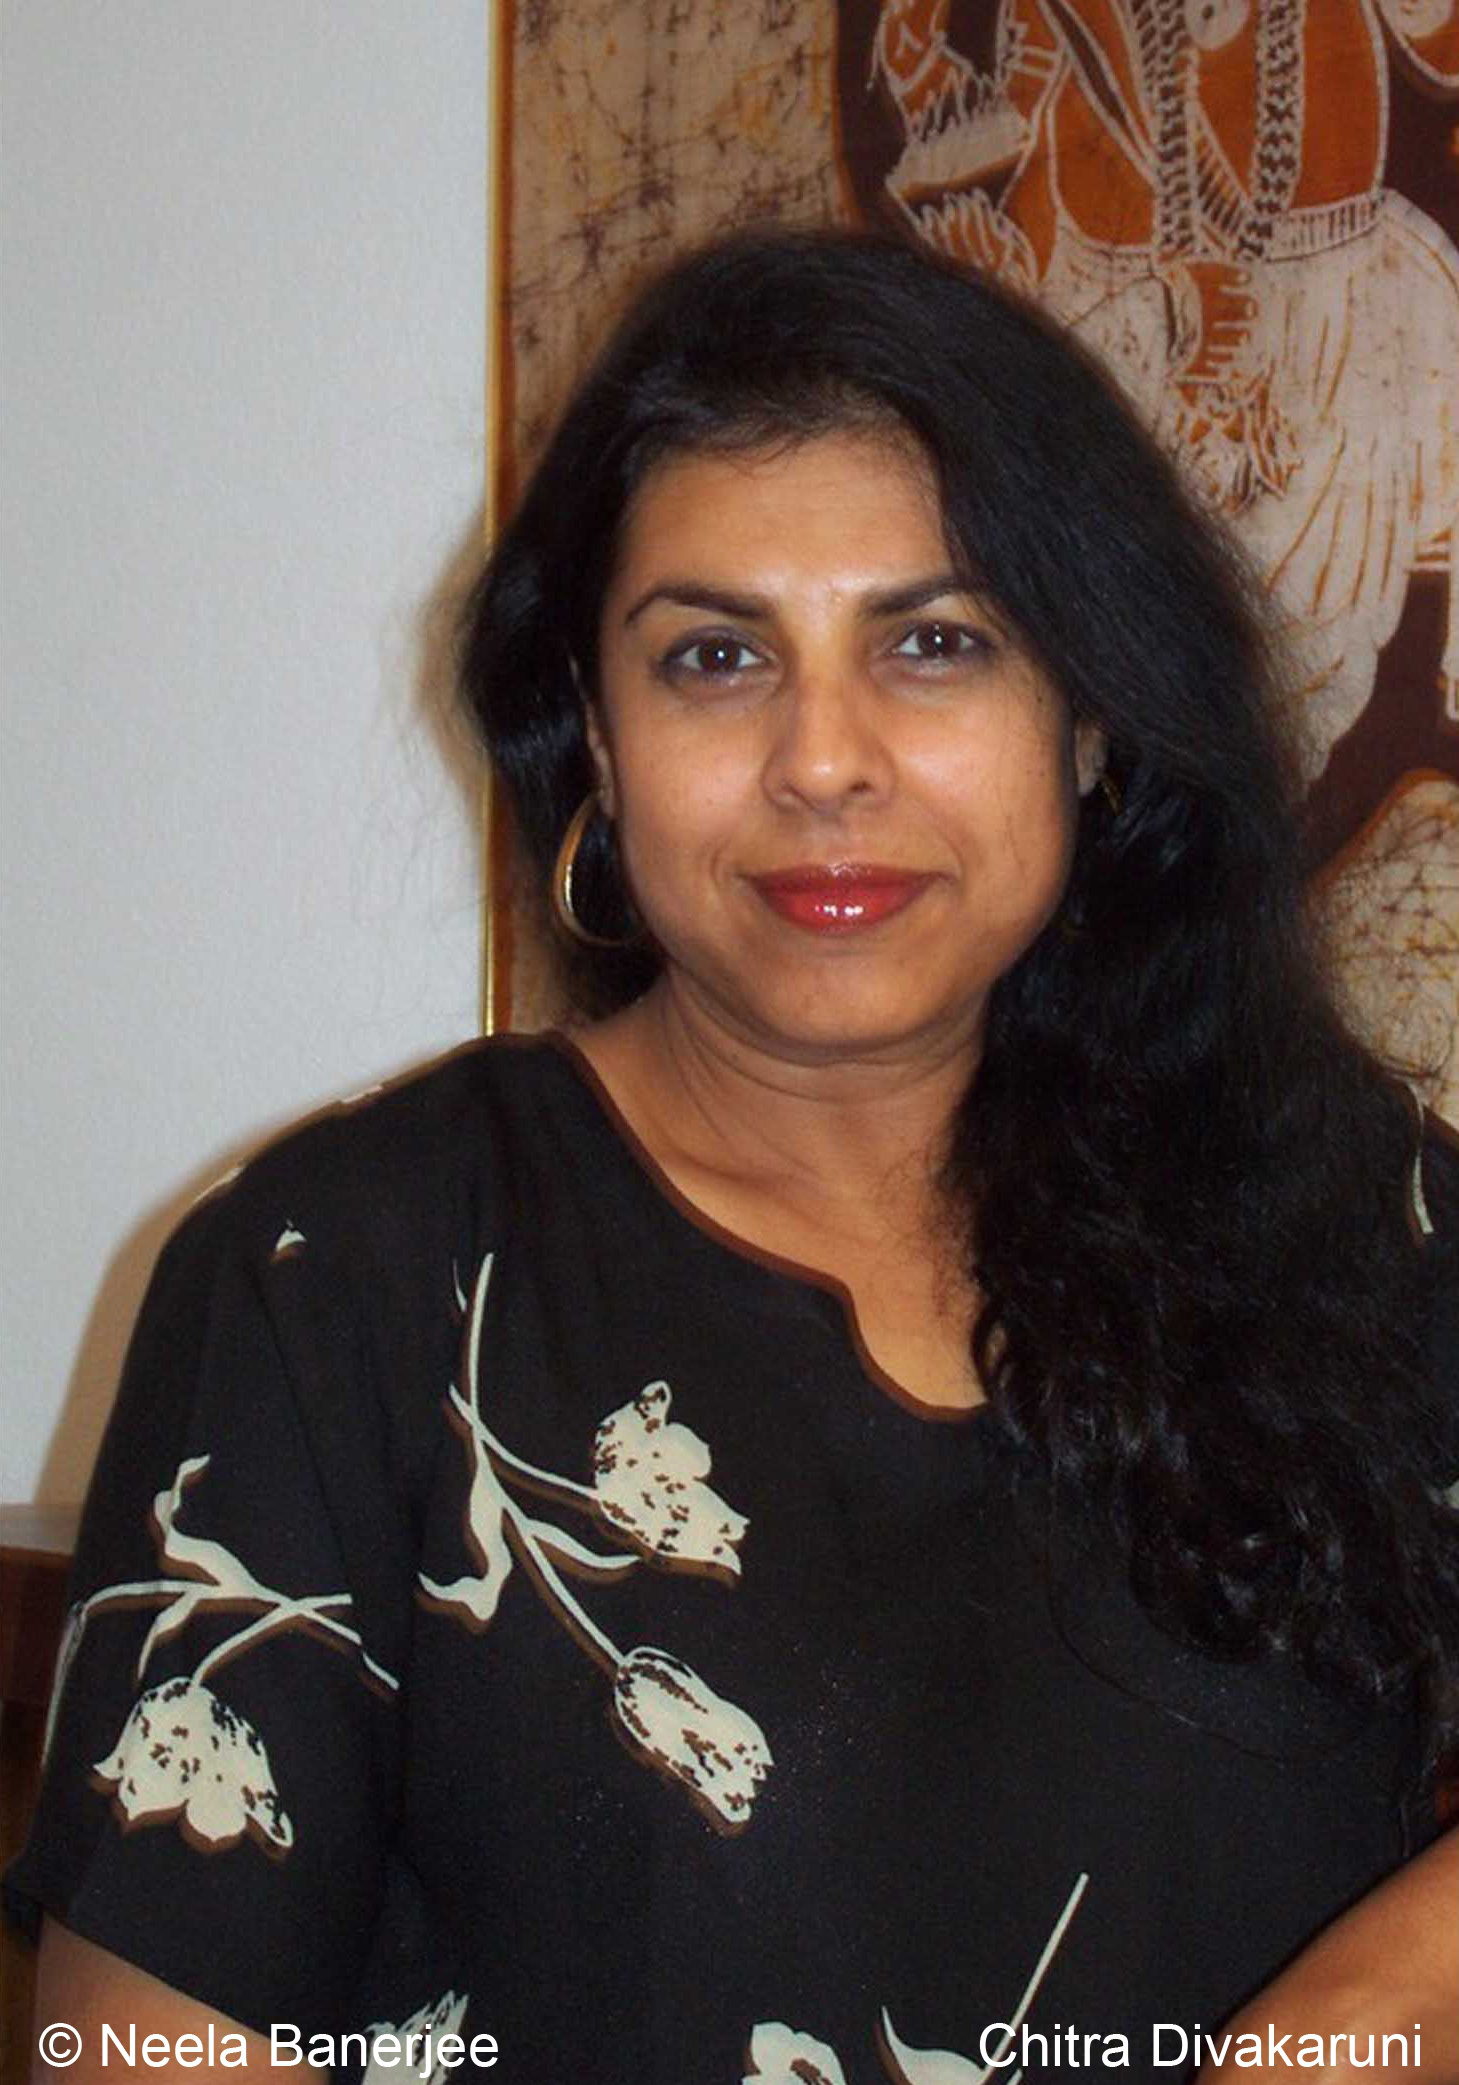 chitra banerjee divakaruni essay Abstract: chitra banerjee divakaruni is an award winning author, born in calcutta, who spent the first nineteen years of her life in india divakaruni has won a readership for her poetry and fiction of immigrant life.